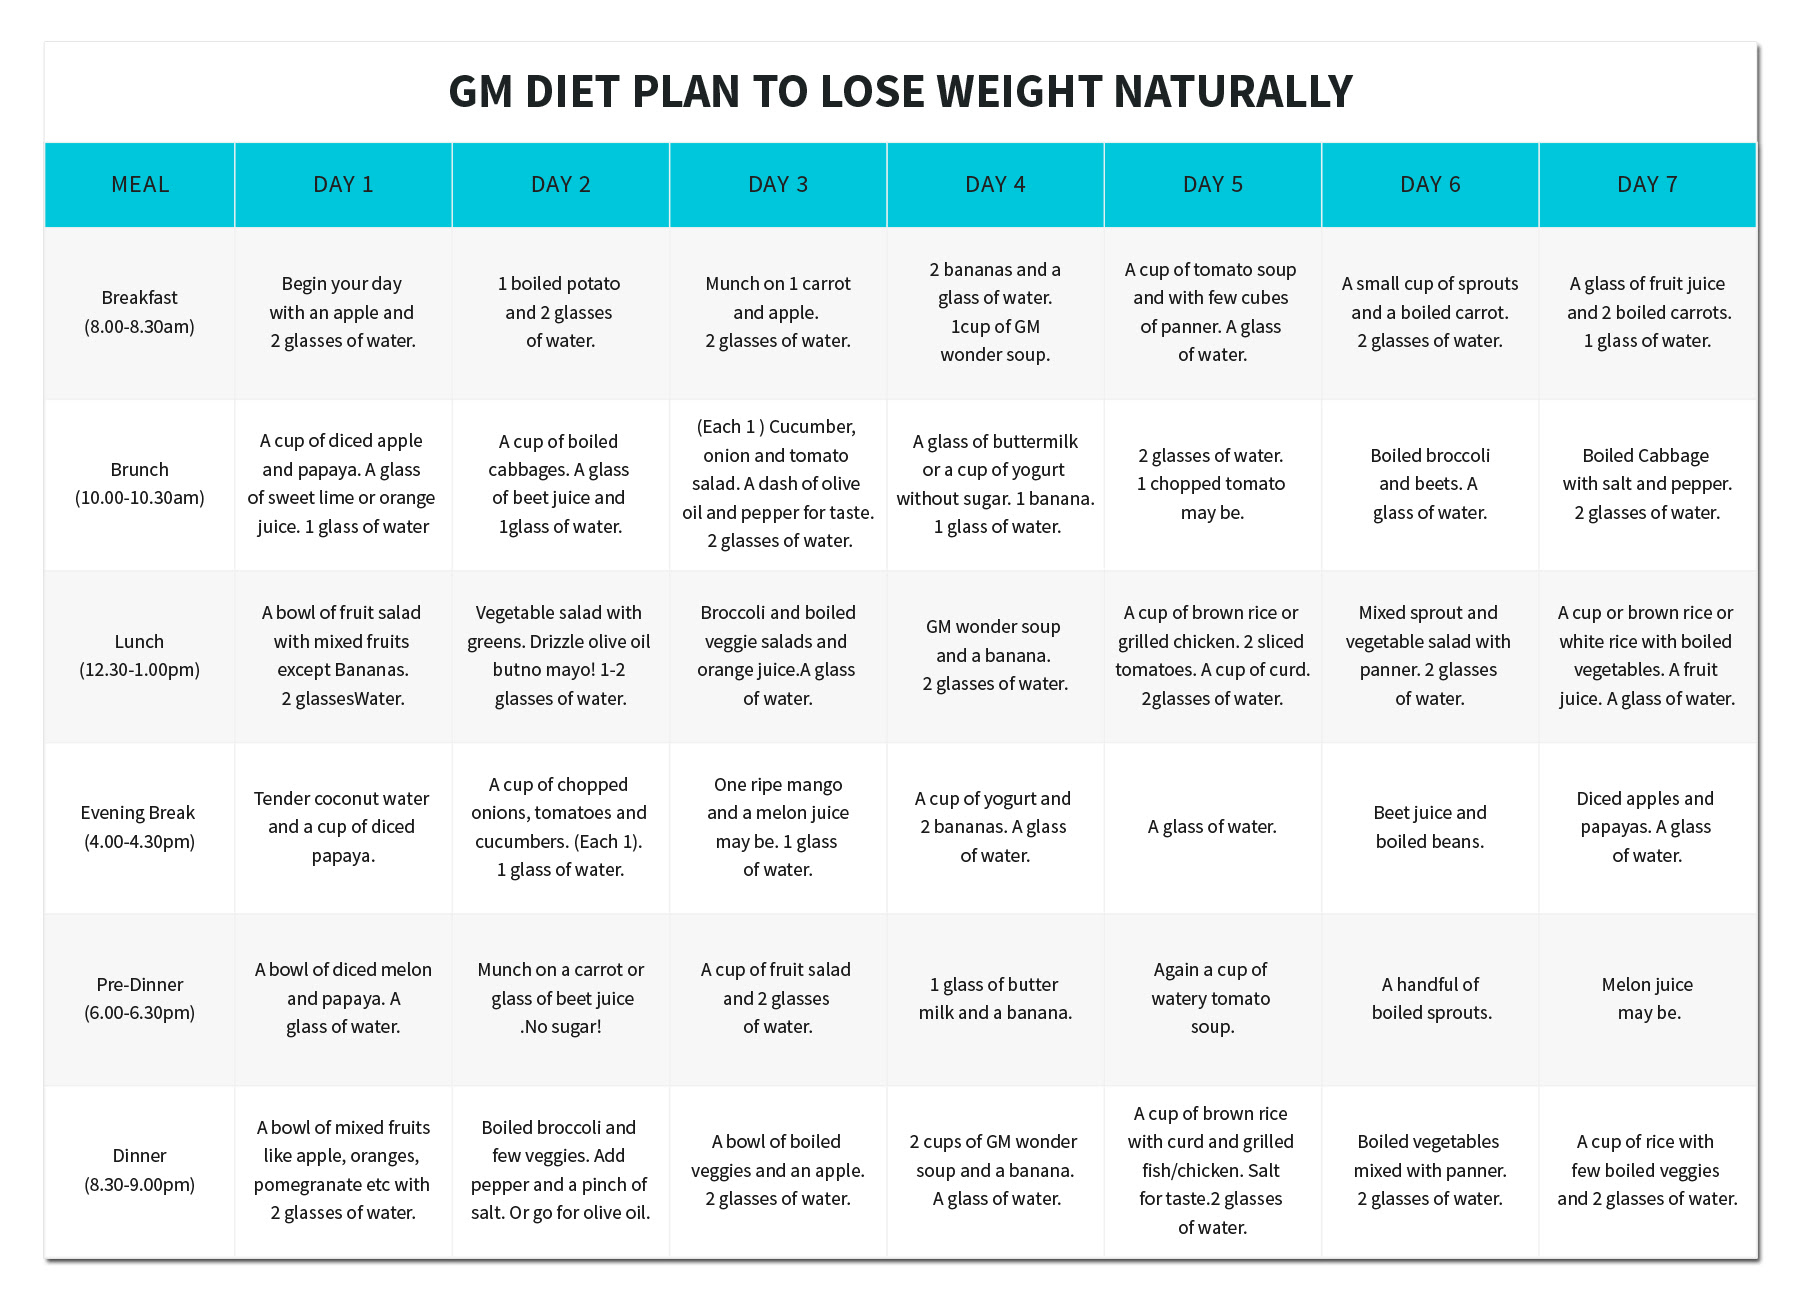 How to lose weight naturally proven gm diet plan for General motors diet pdf